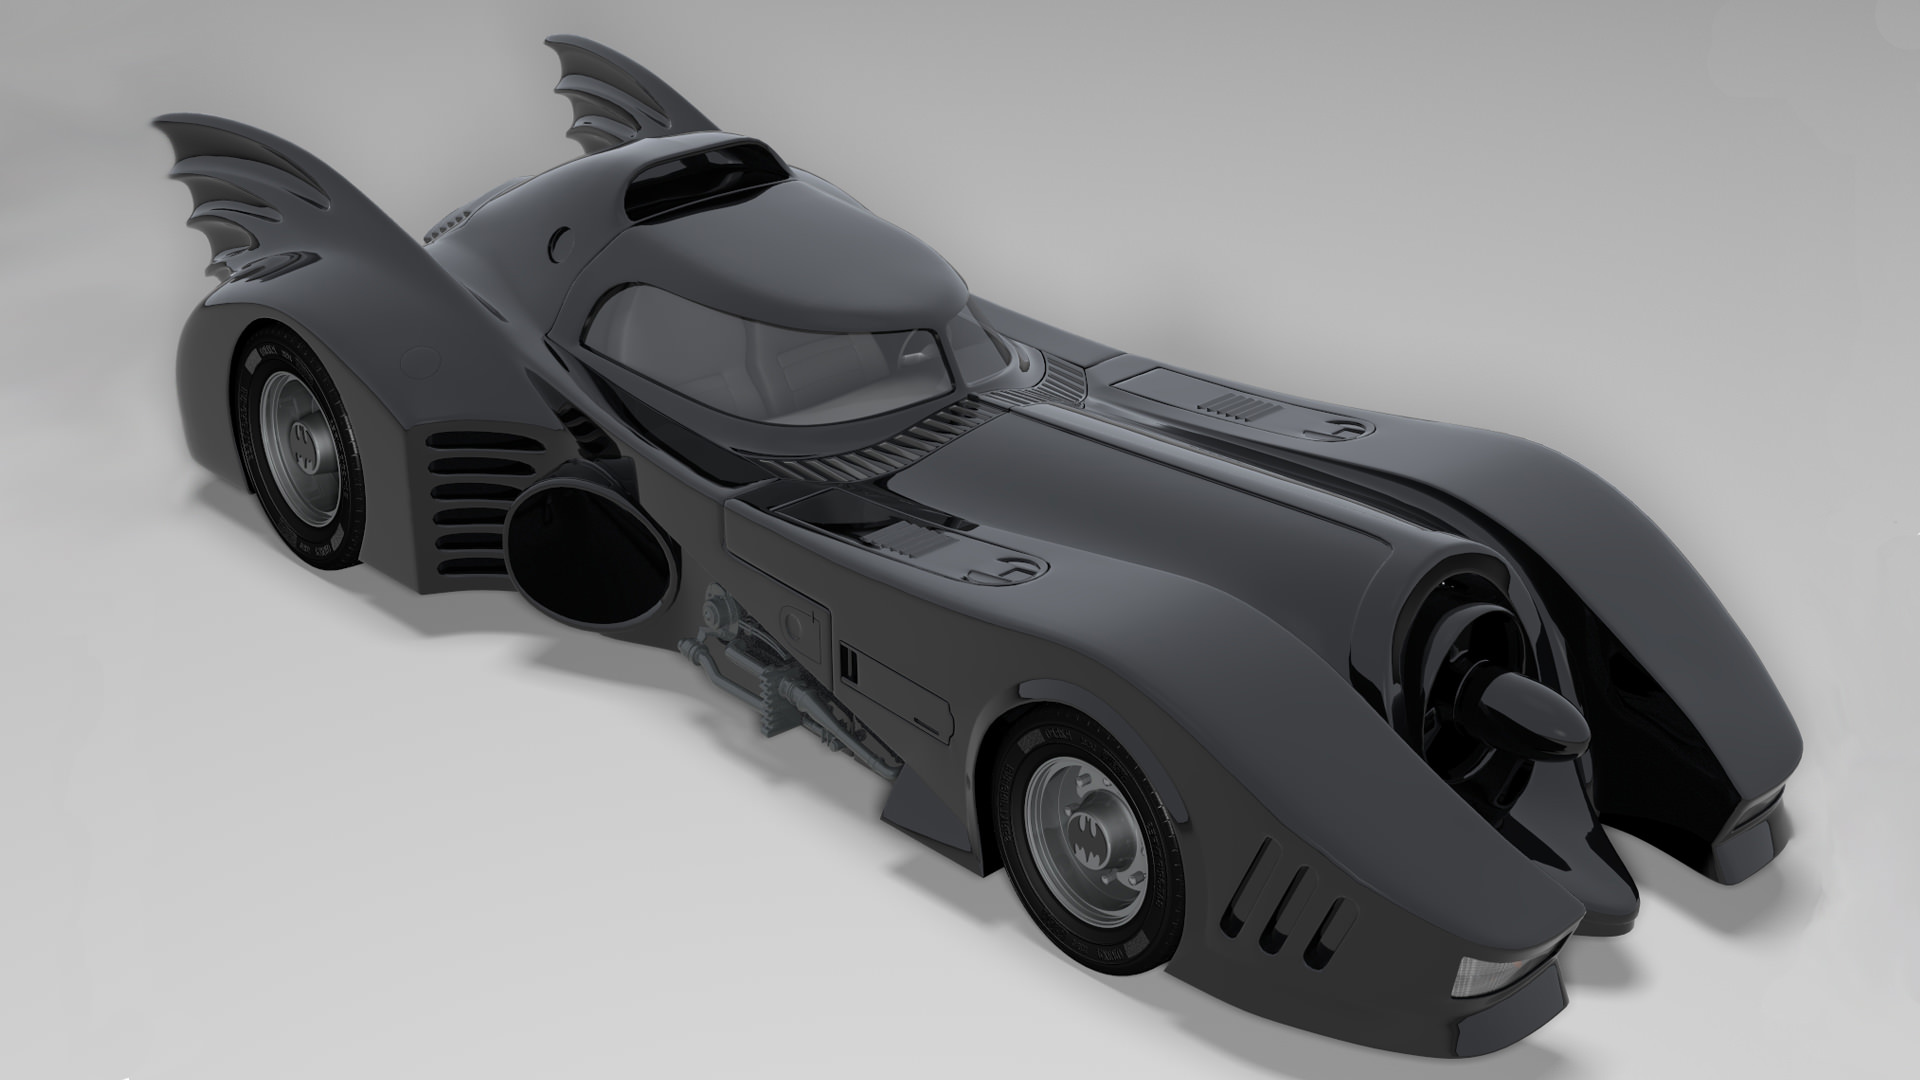 1989 Batmobile x Batmobile D Model for ds Max Maya Cinema D Lightwave 1920x1080